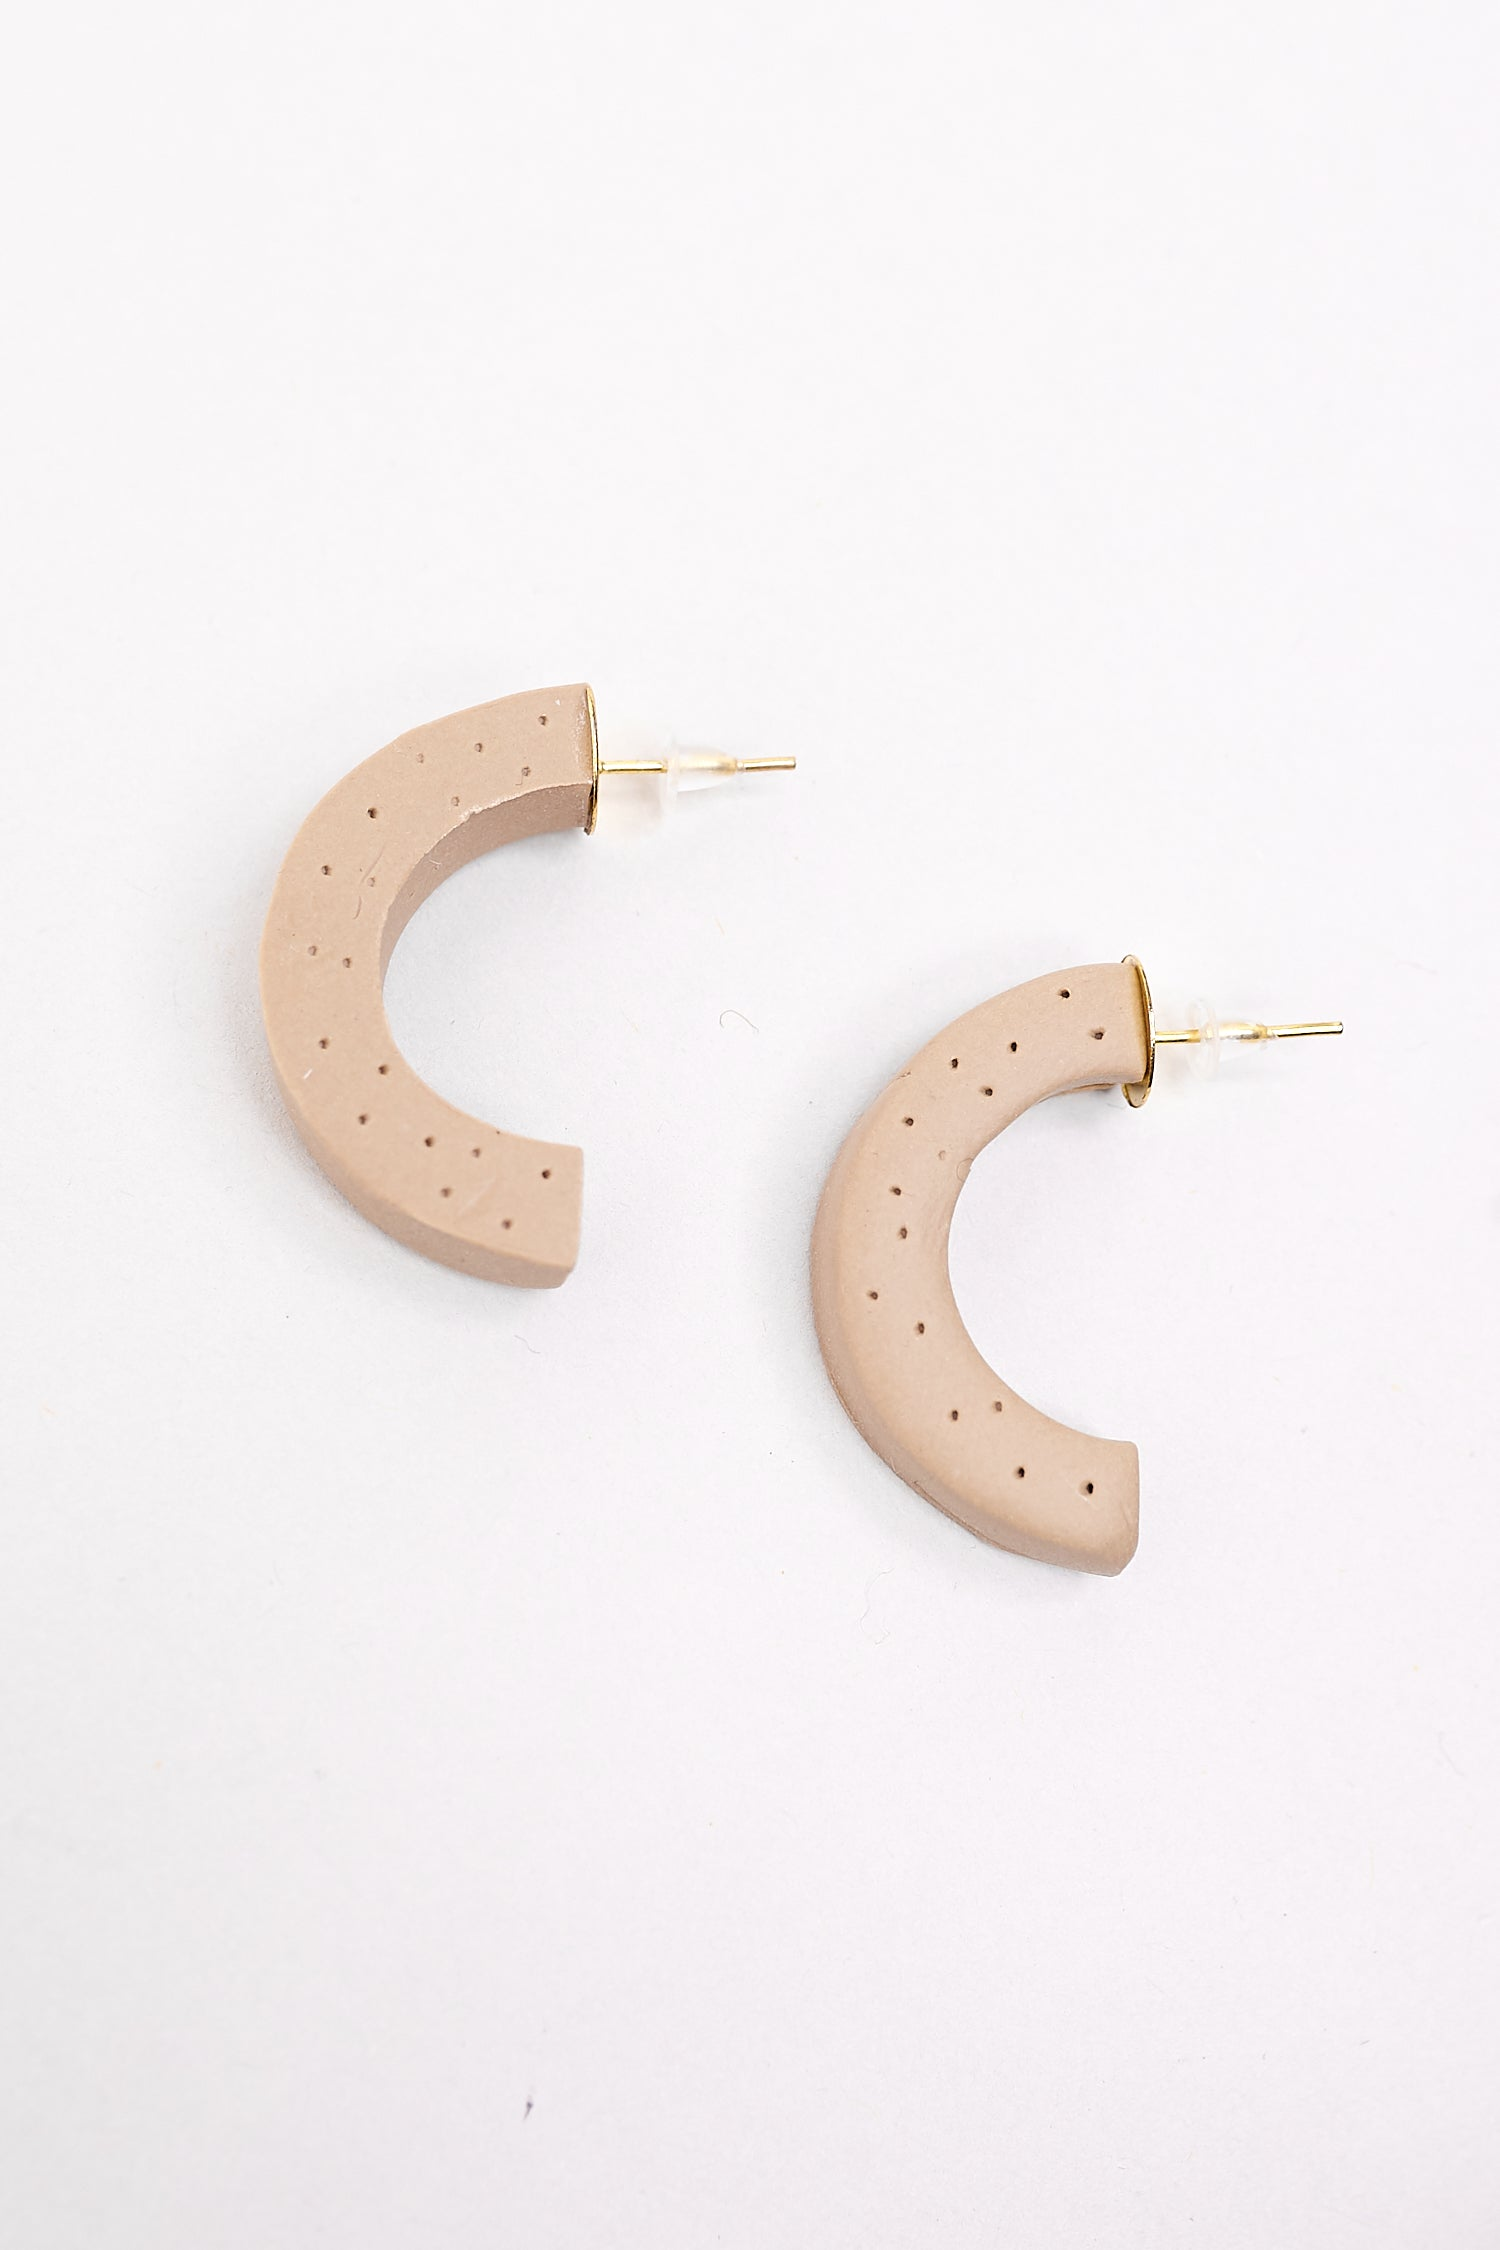 Peppertrain Crescent Hoop Earrings in Latte - Vert & Vogue